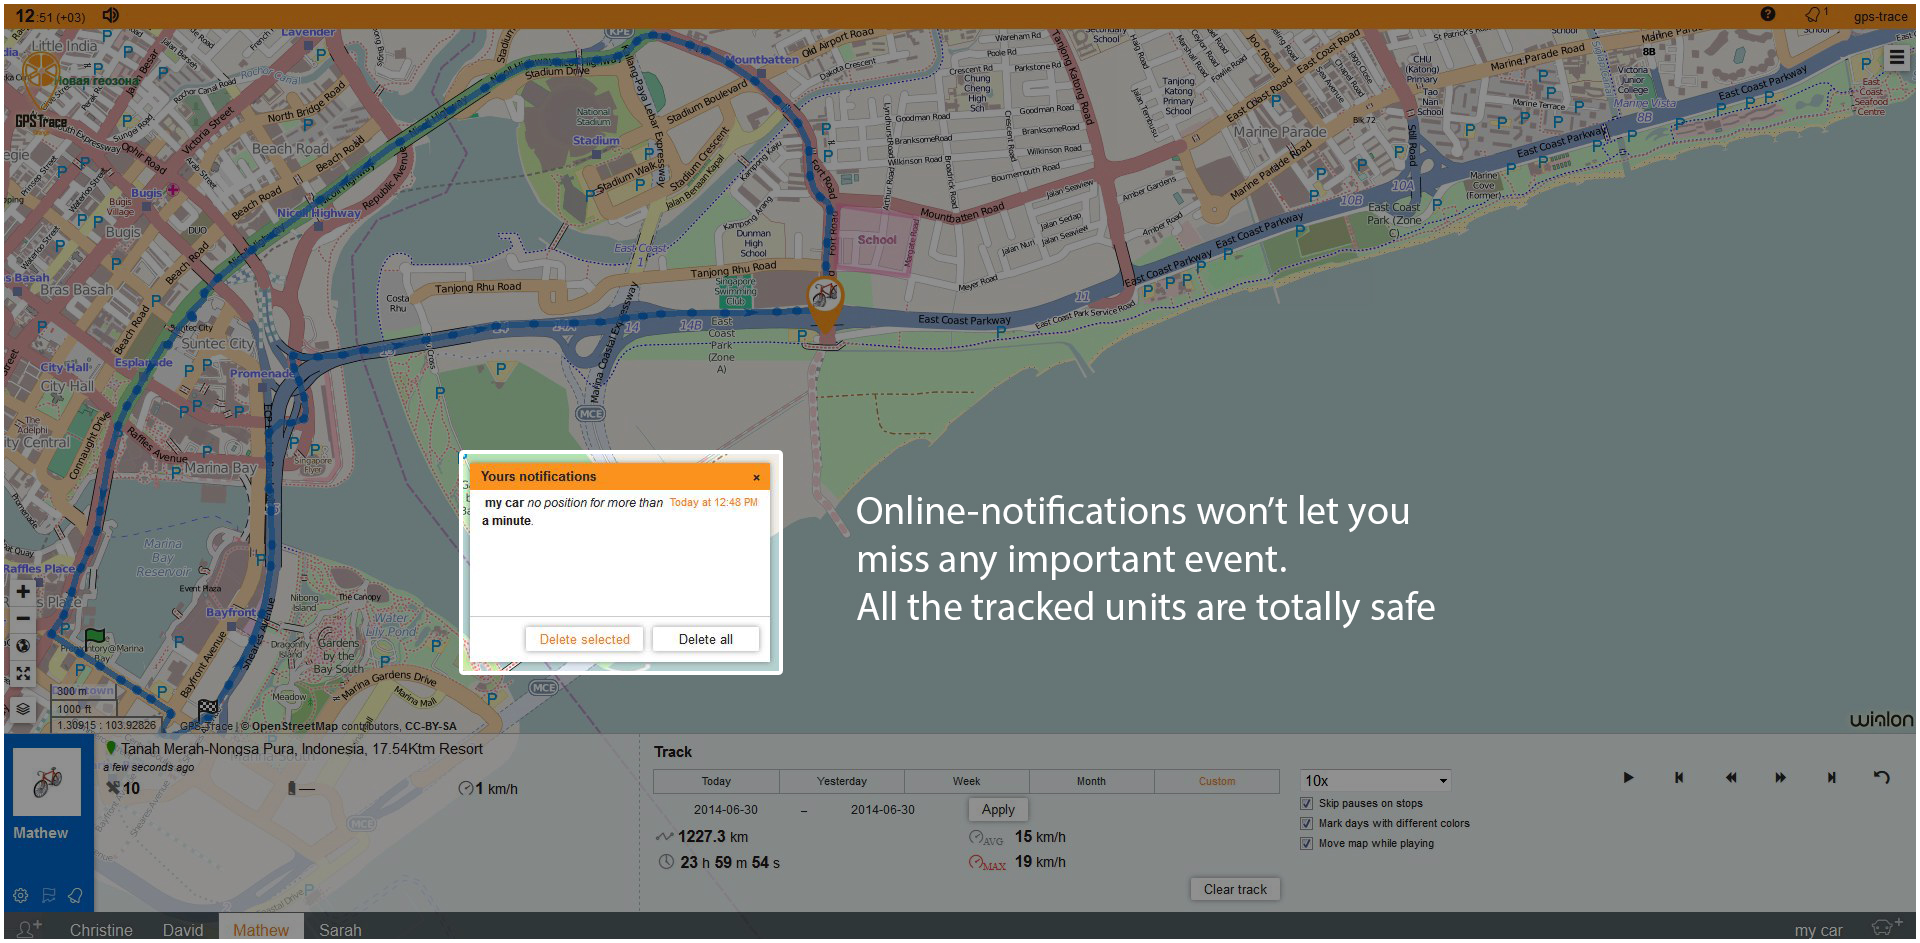 Online-notifications won't let you miss any important event. All the tracked units are totally safe.